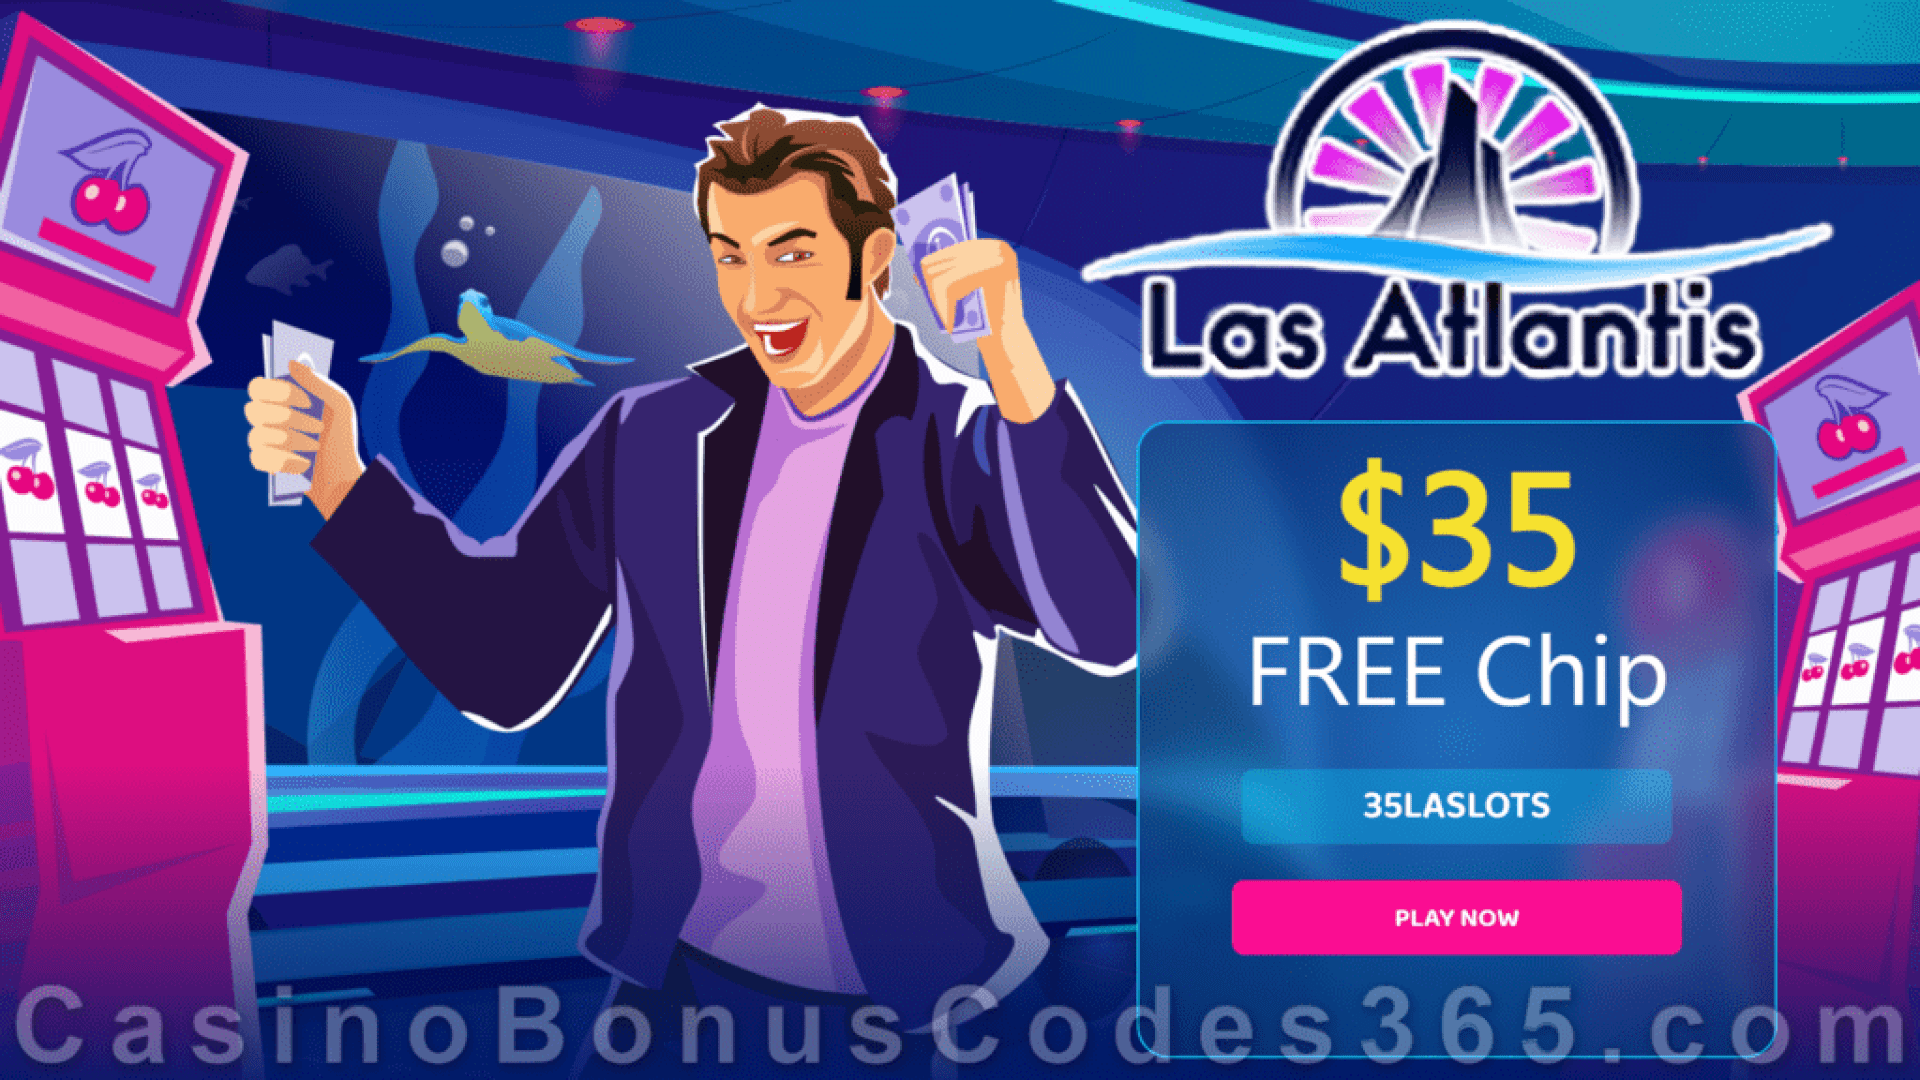 Las Atlantis Casino $35 FREE Chip No Deposit Special Welcome Deal